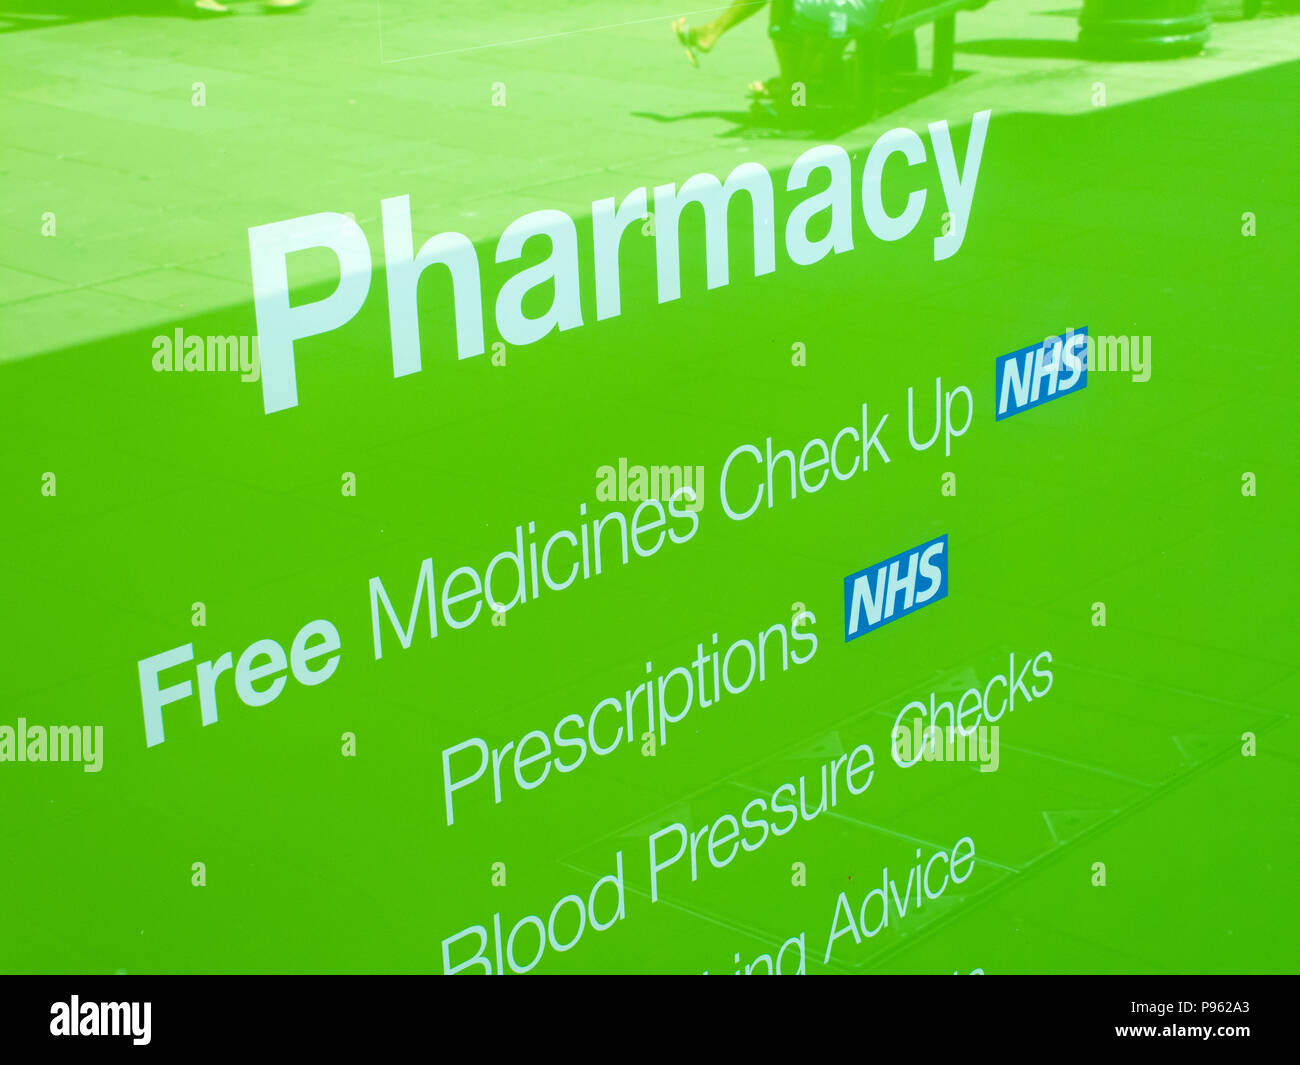 NHS, National Health Service prescriptions sign in pharmacy shop window - Stock Image